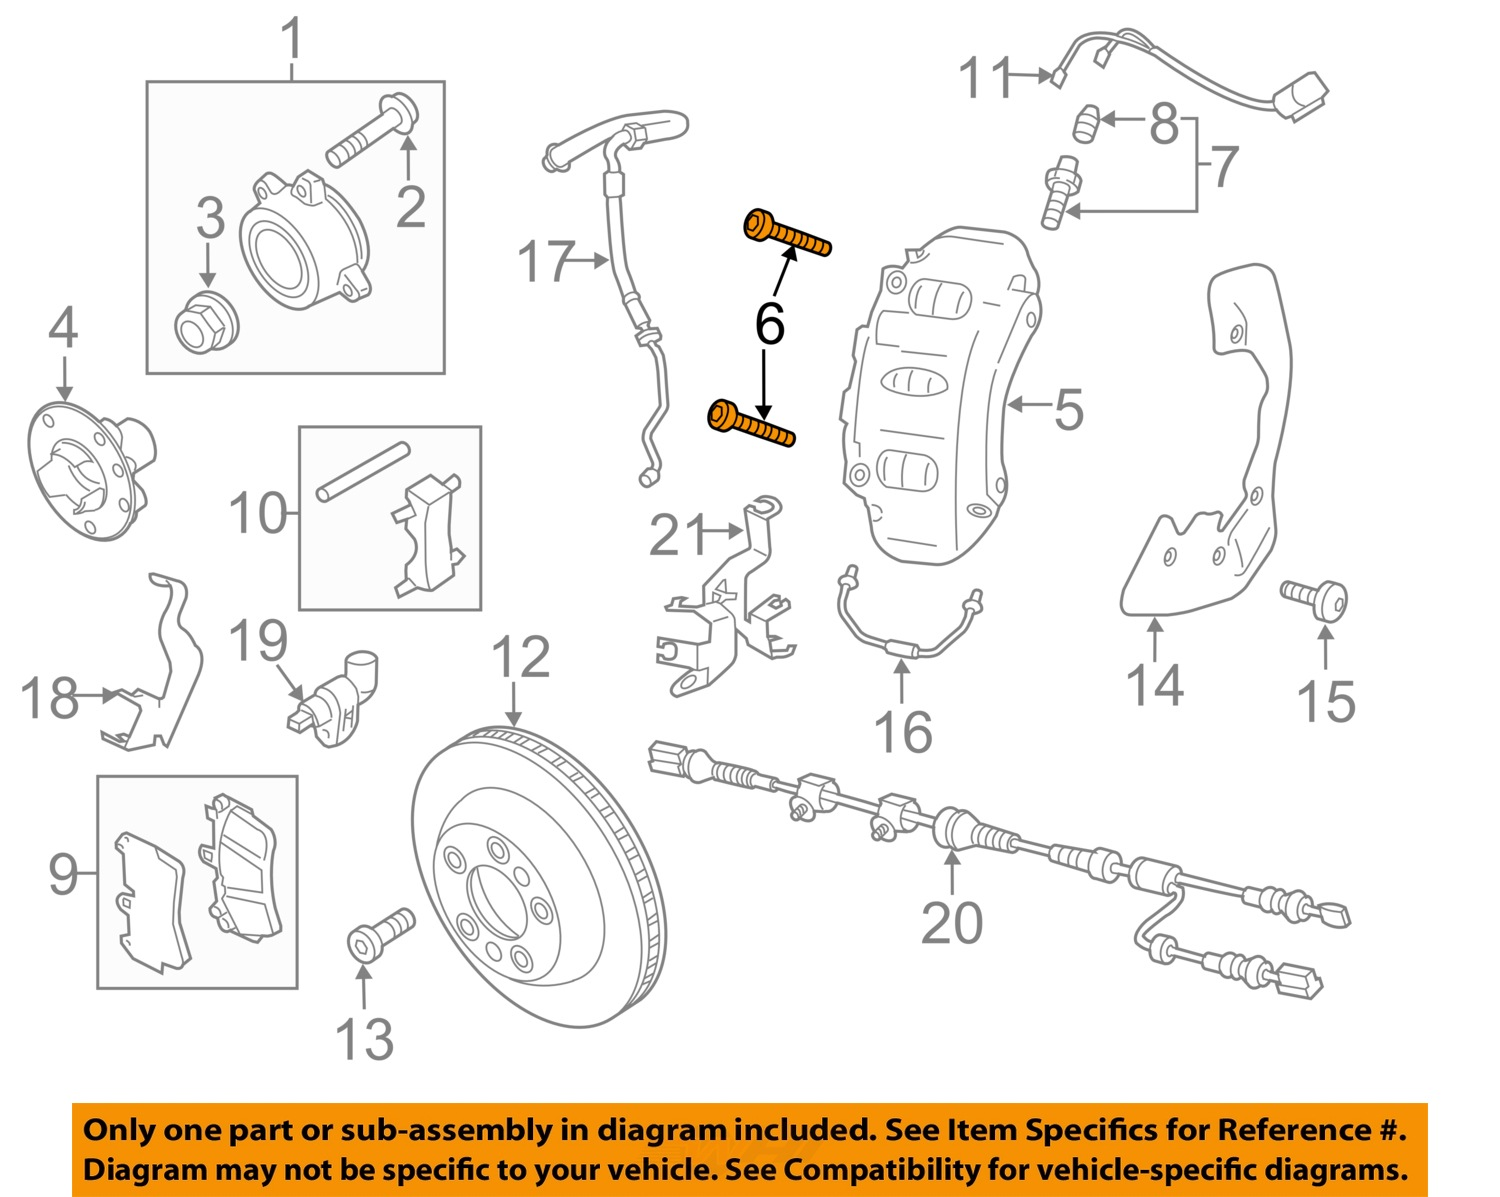 hight resolution of  6 on diagram only genuine oe factory original item